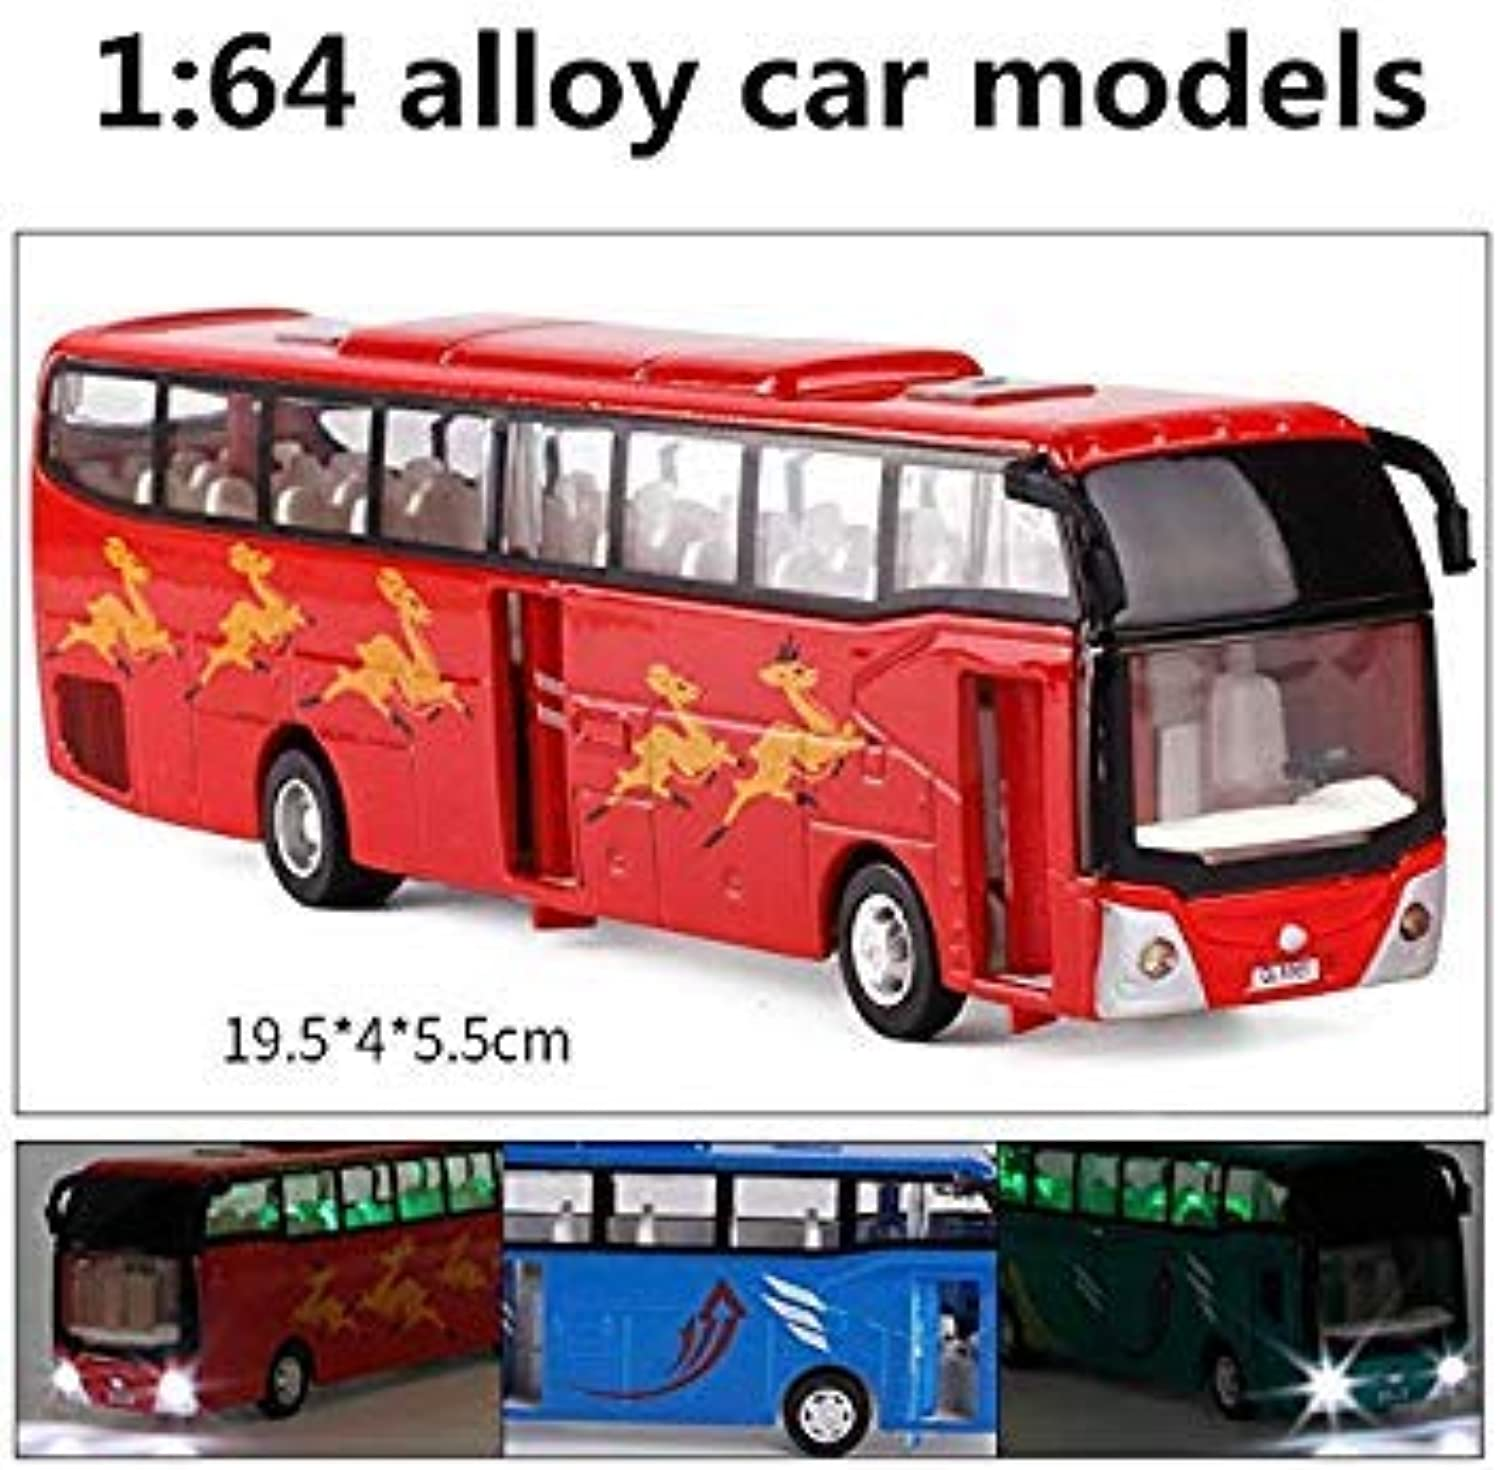 1 64 Alloy car Models,high Simulation Tour Bus Model,Toy Model,Toy